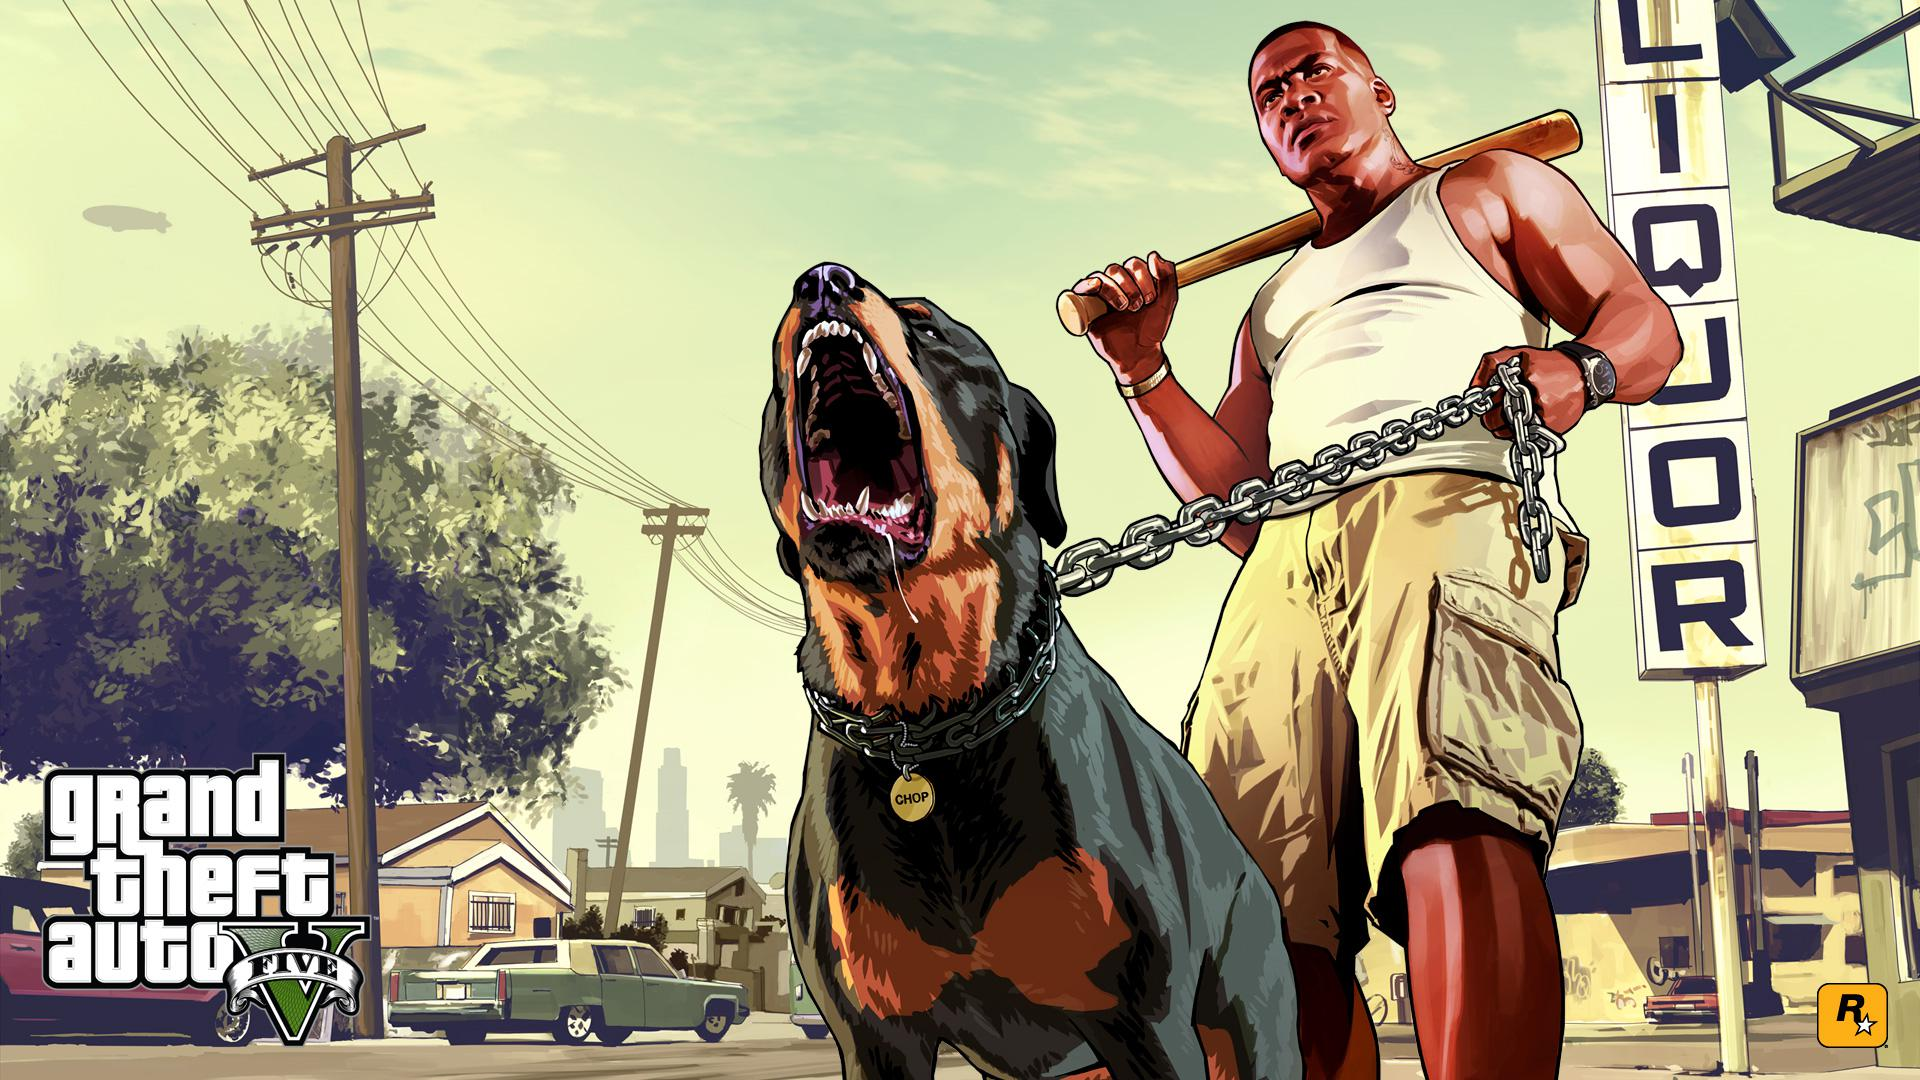 There has been no news yet on the characters or story in GTA 6